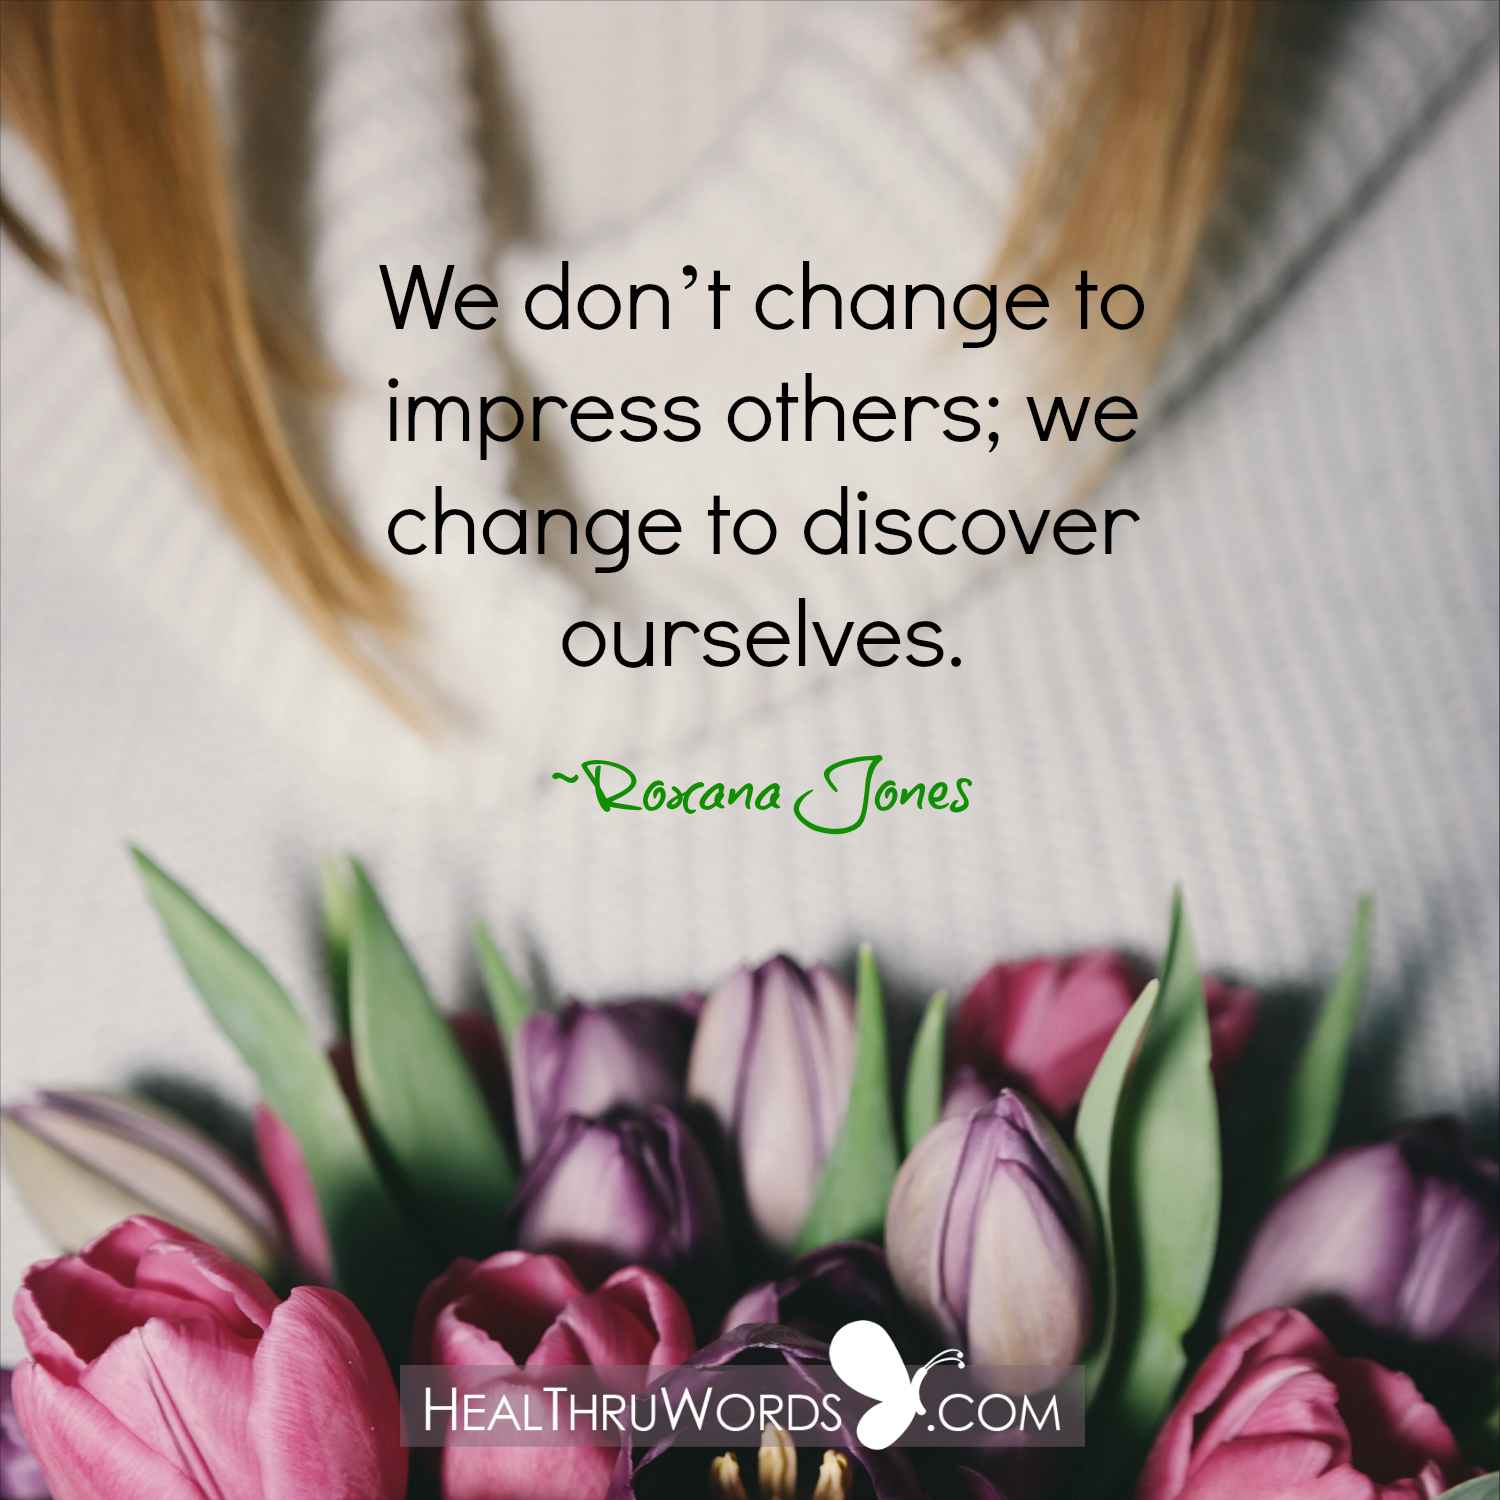 Inspirational Image: Self-Discovering